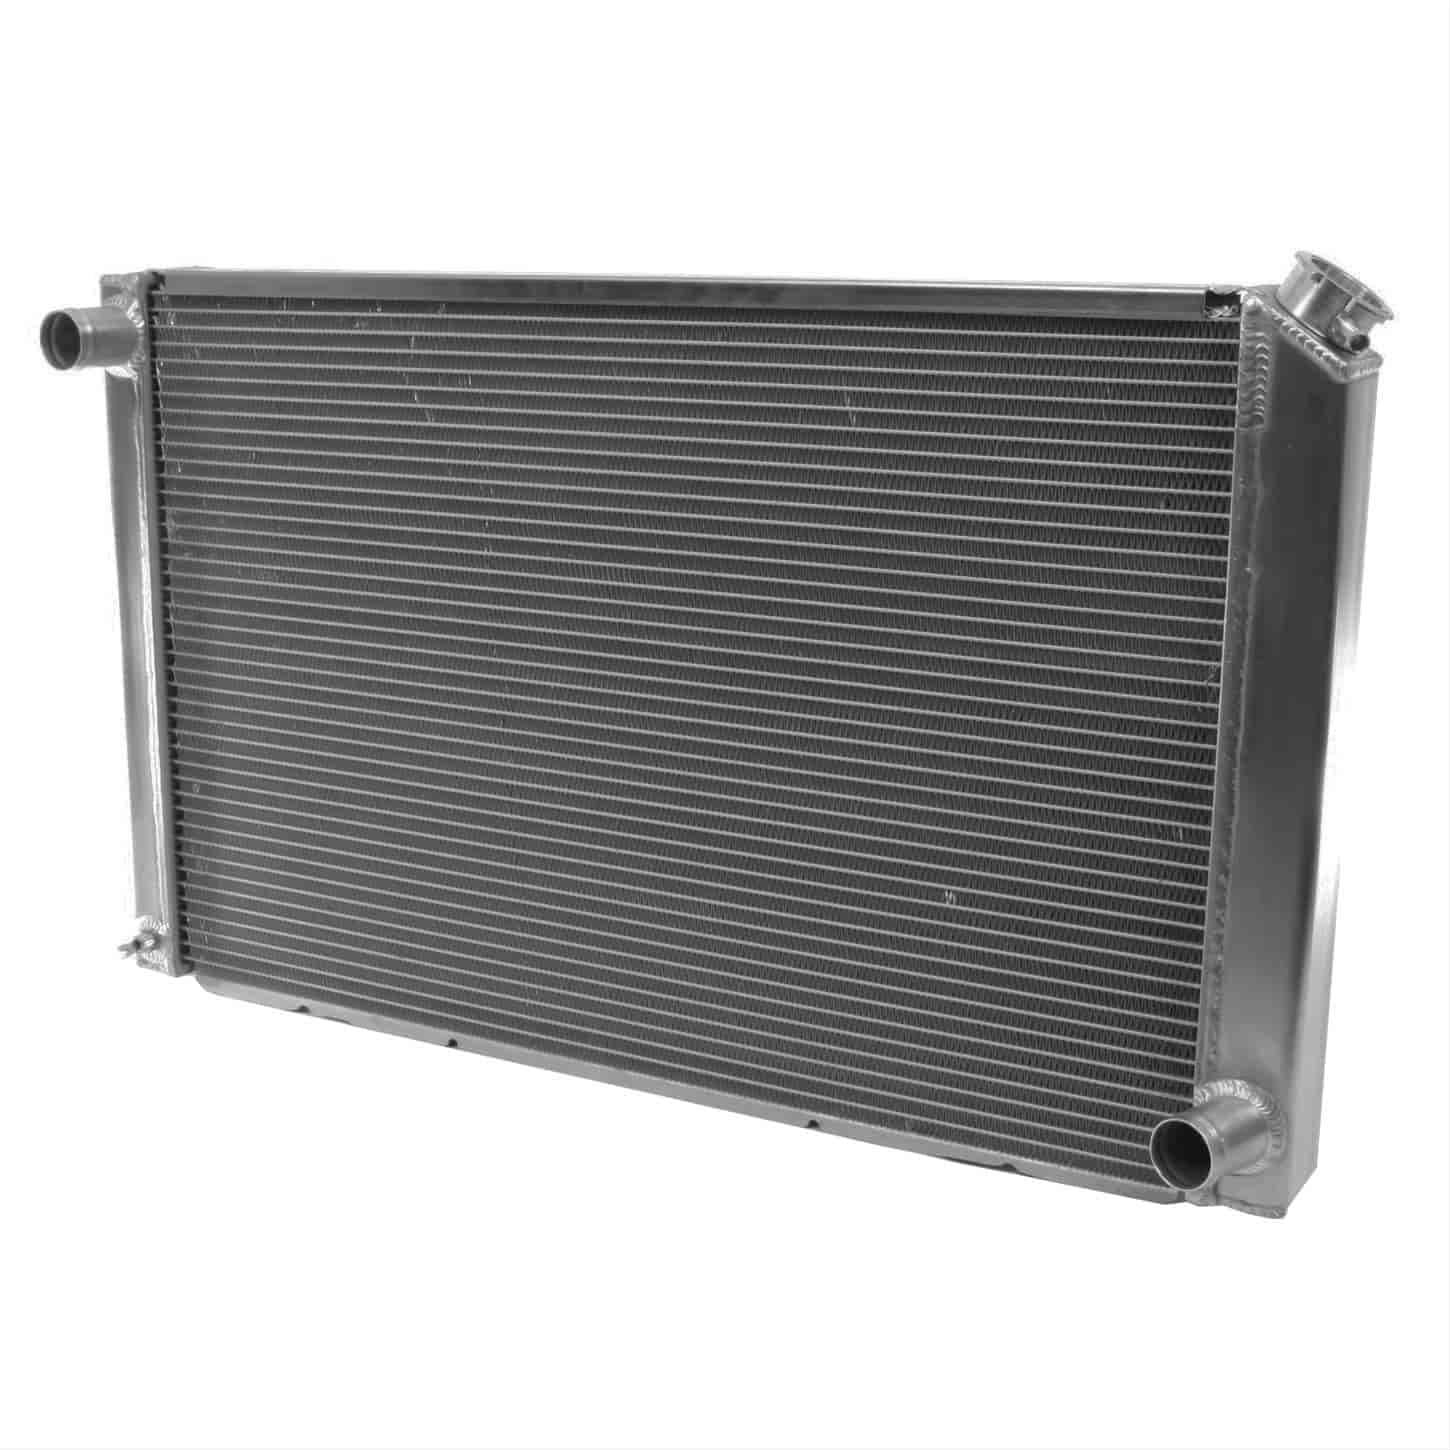 Be Cool Radiators 10010 - Be Cool Aluminator Series Direct-Fit Aluminum Radiators